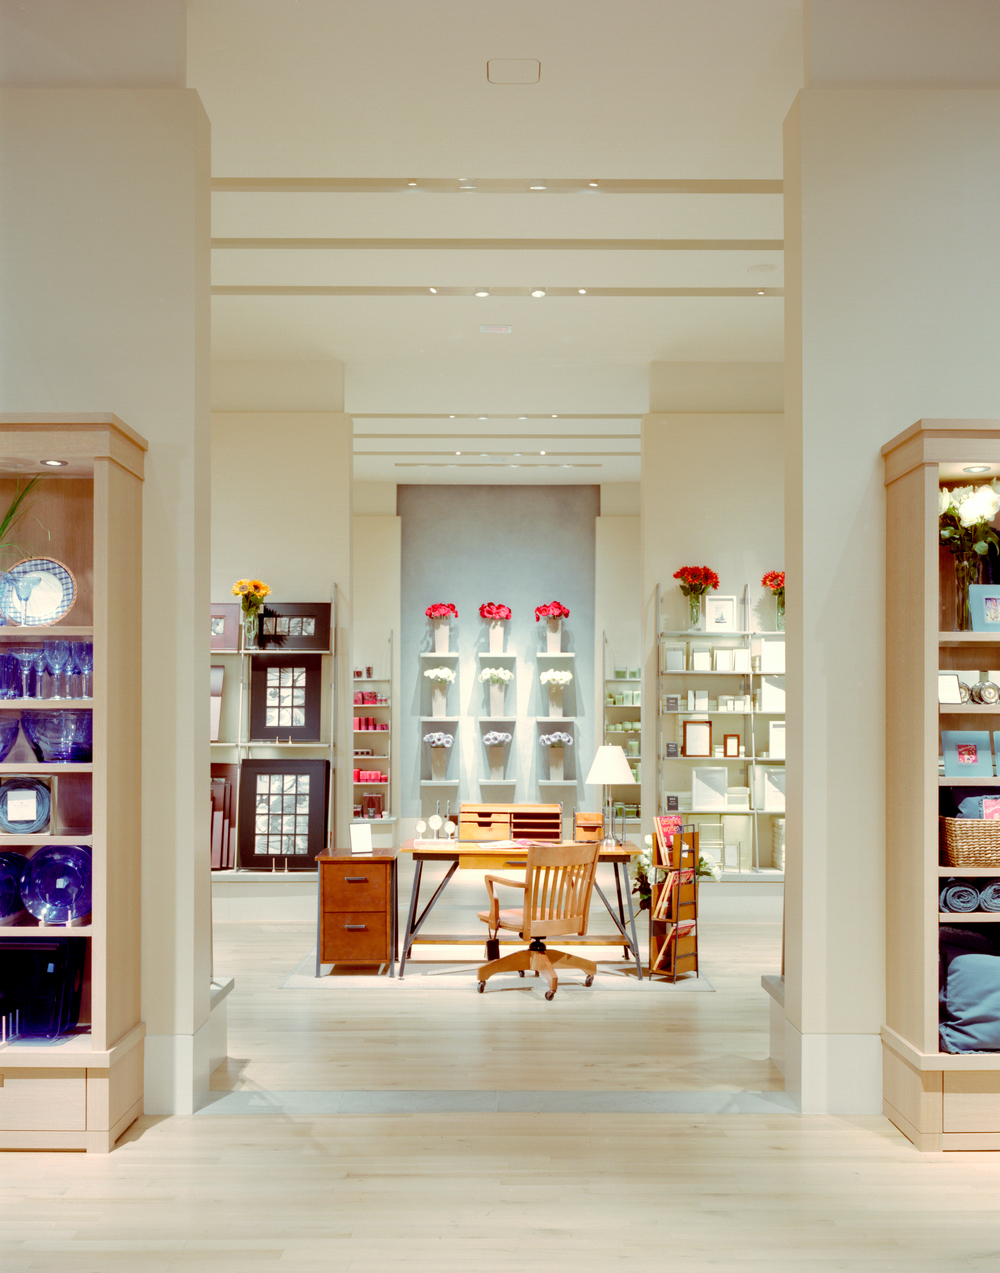 pottery barn stanford 1.jpg